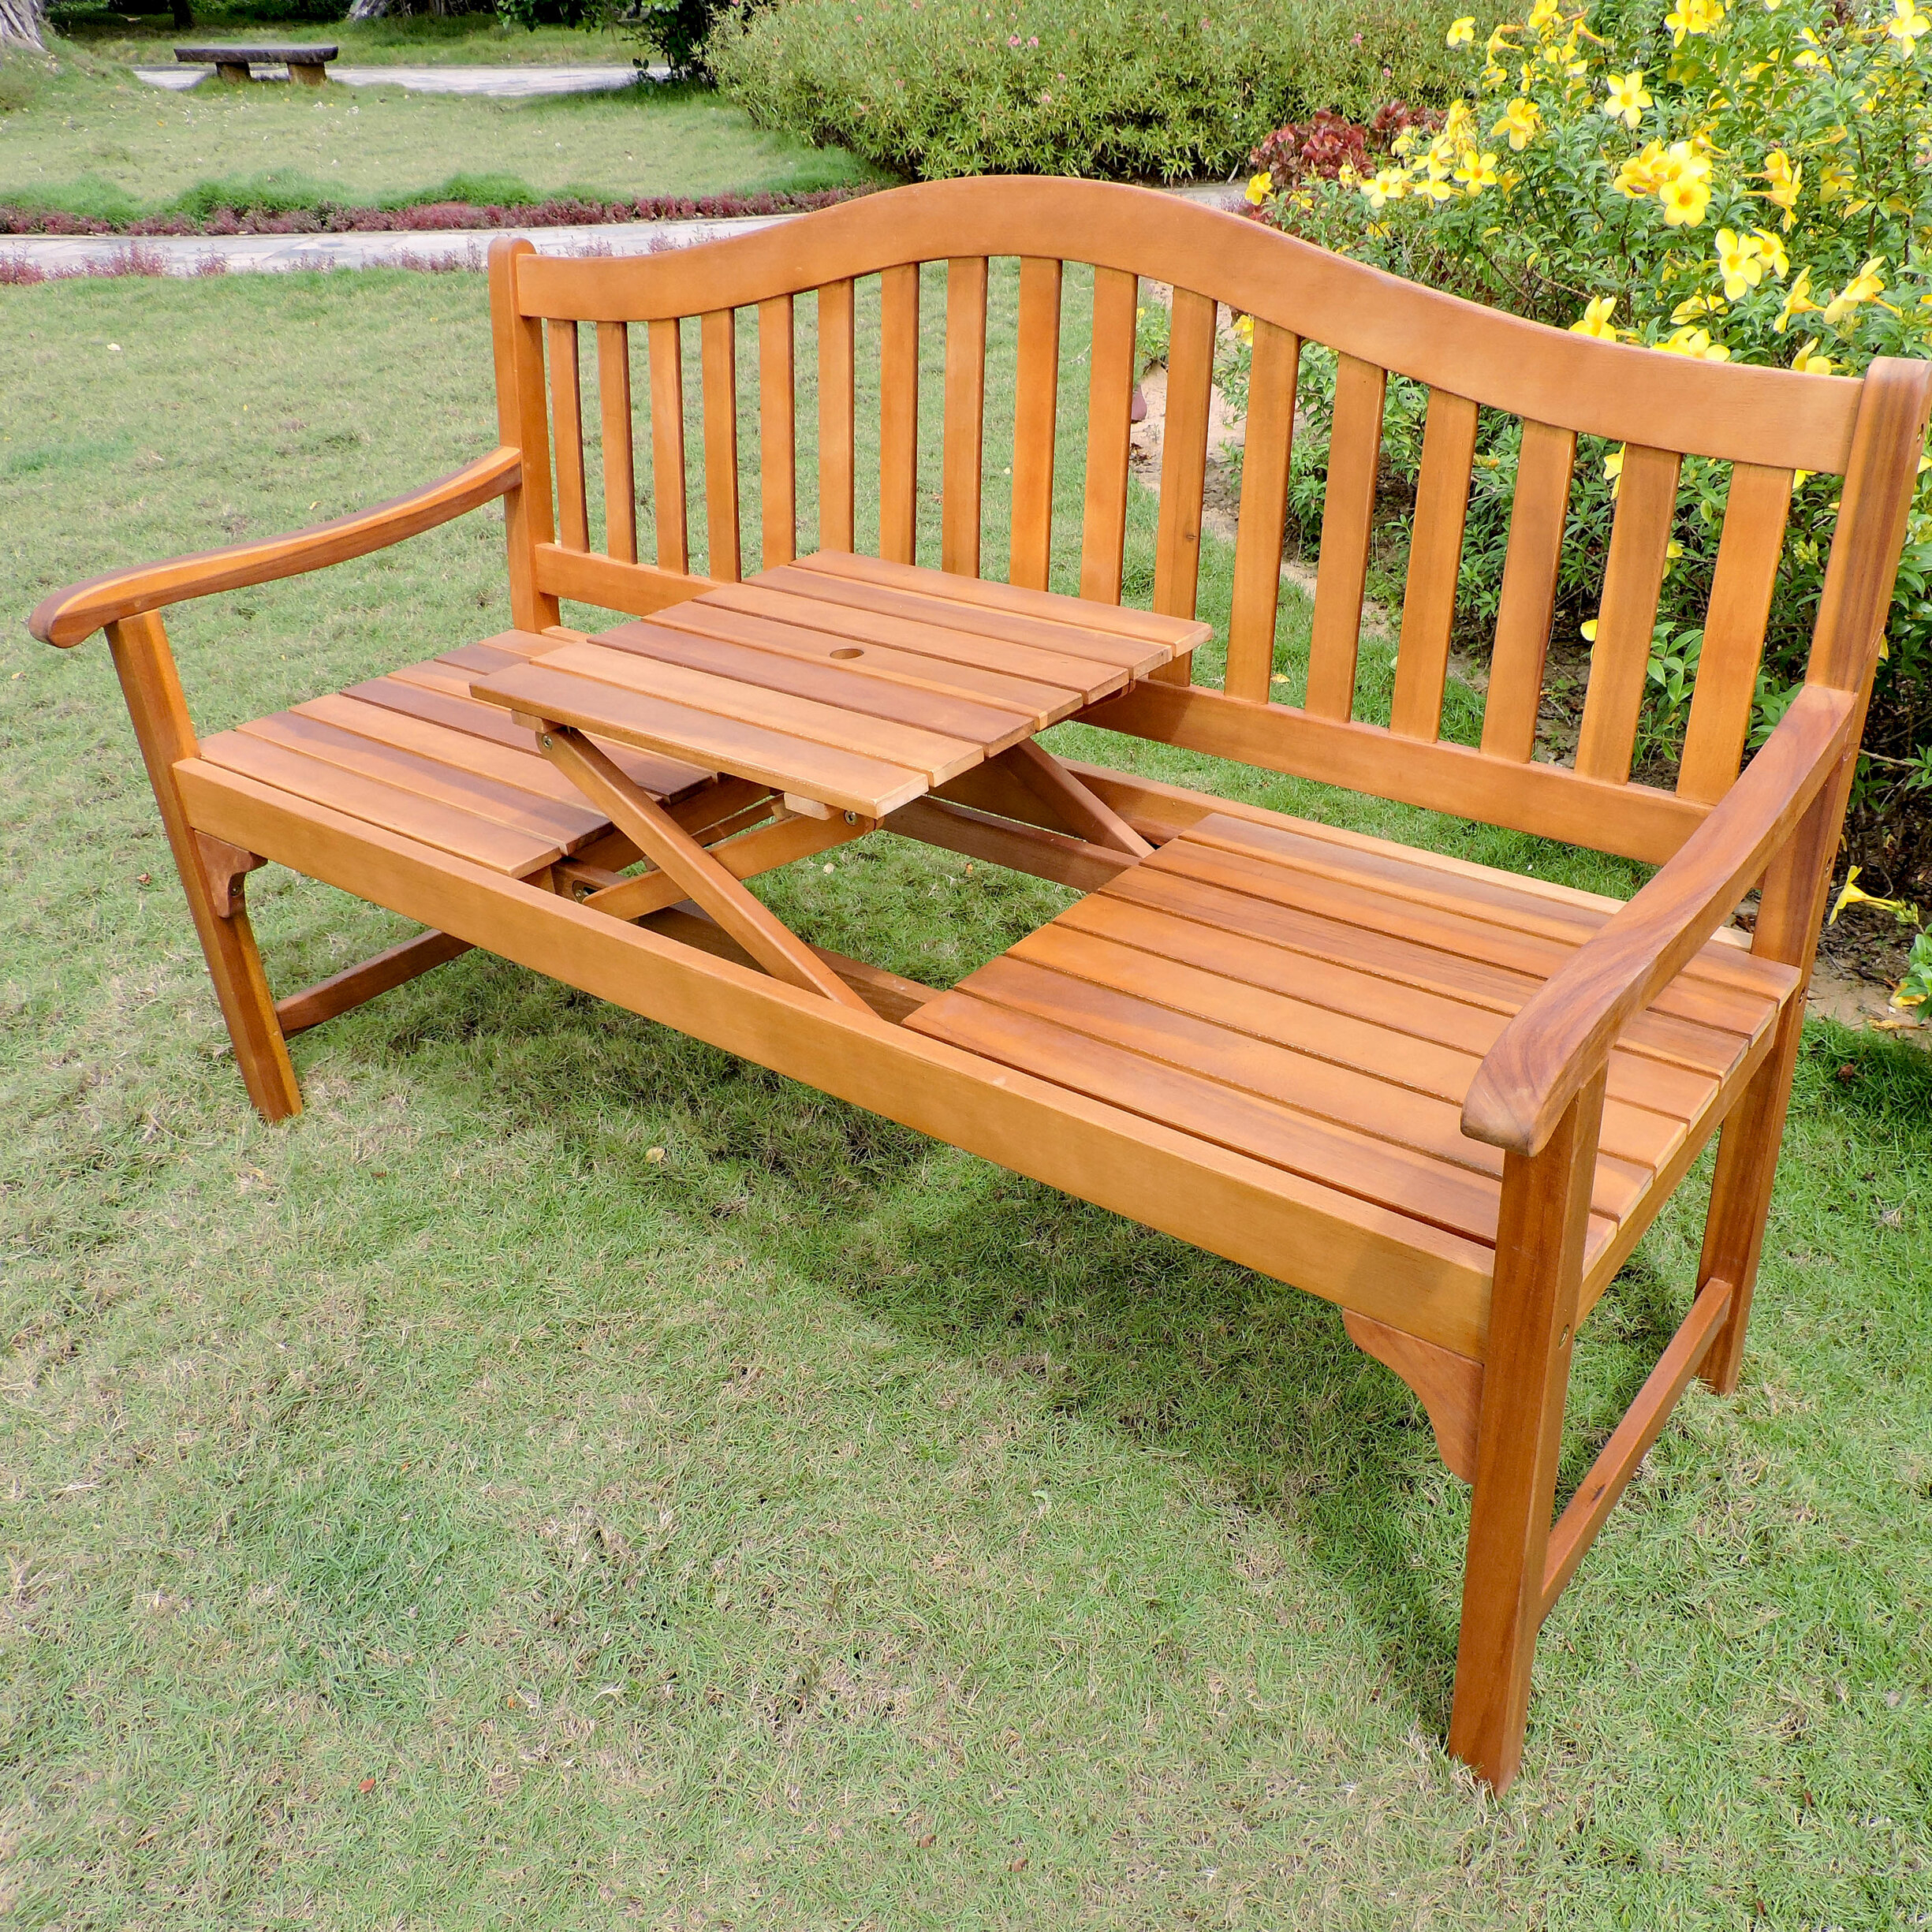 Leone Wooden Garden Bench Pertaining To Manchester Solid Wood Garden Benches (View 6 of 25)